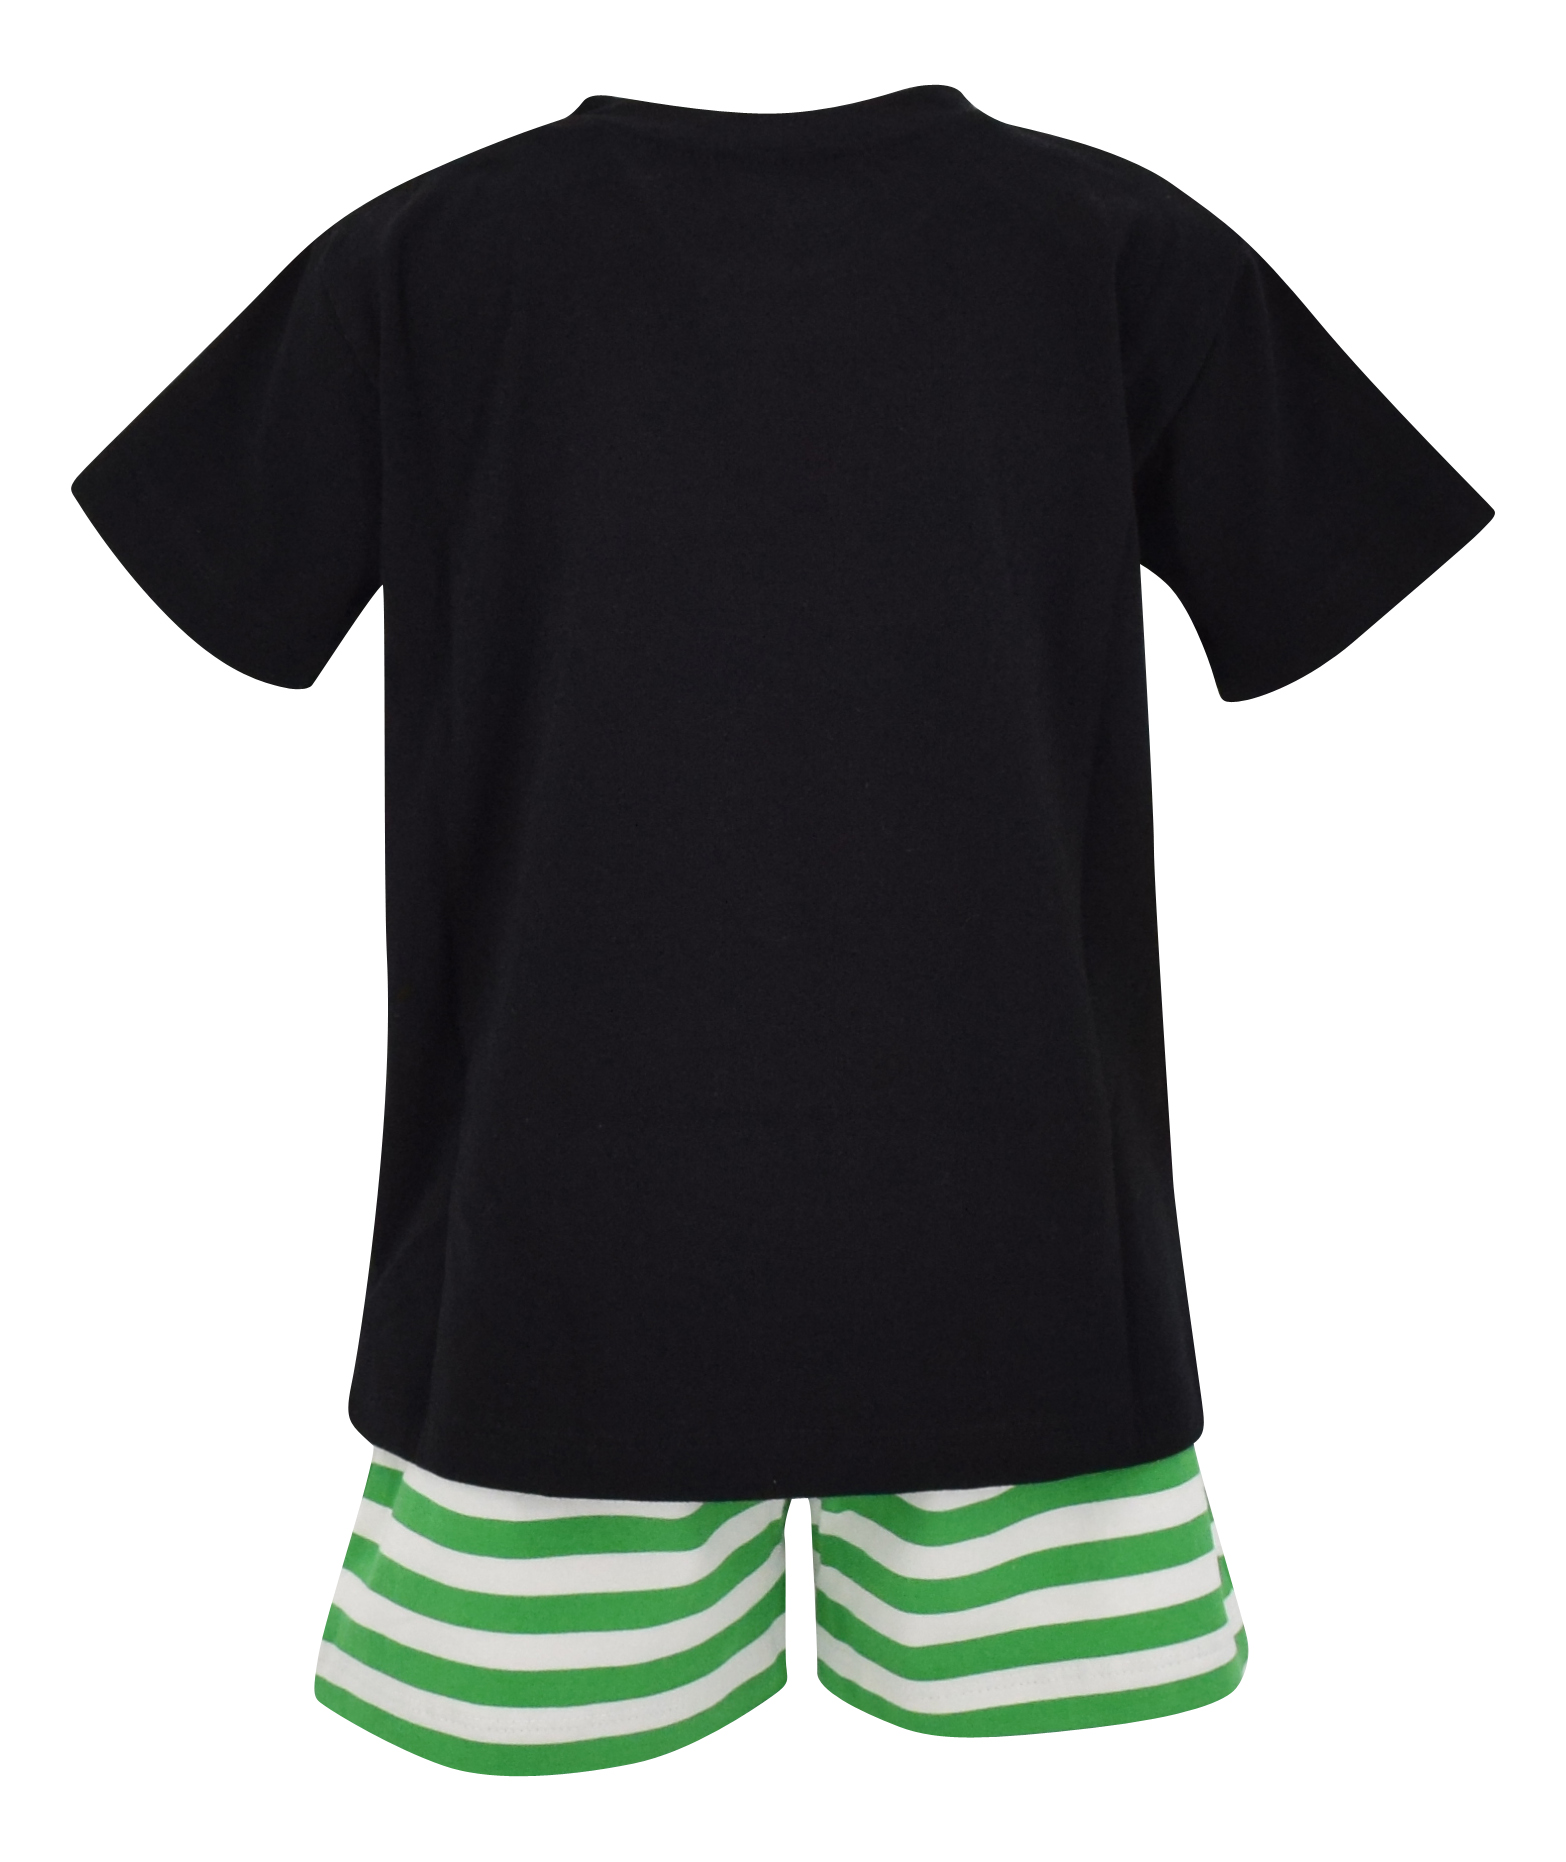 Boys-2-Piece-ST-Patricks-Day-Clover-Outfit-2t-3t-4t-5-6-7-8-Toddler-Kids-Clothes thumbnail 9